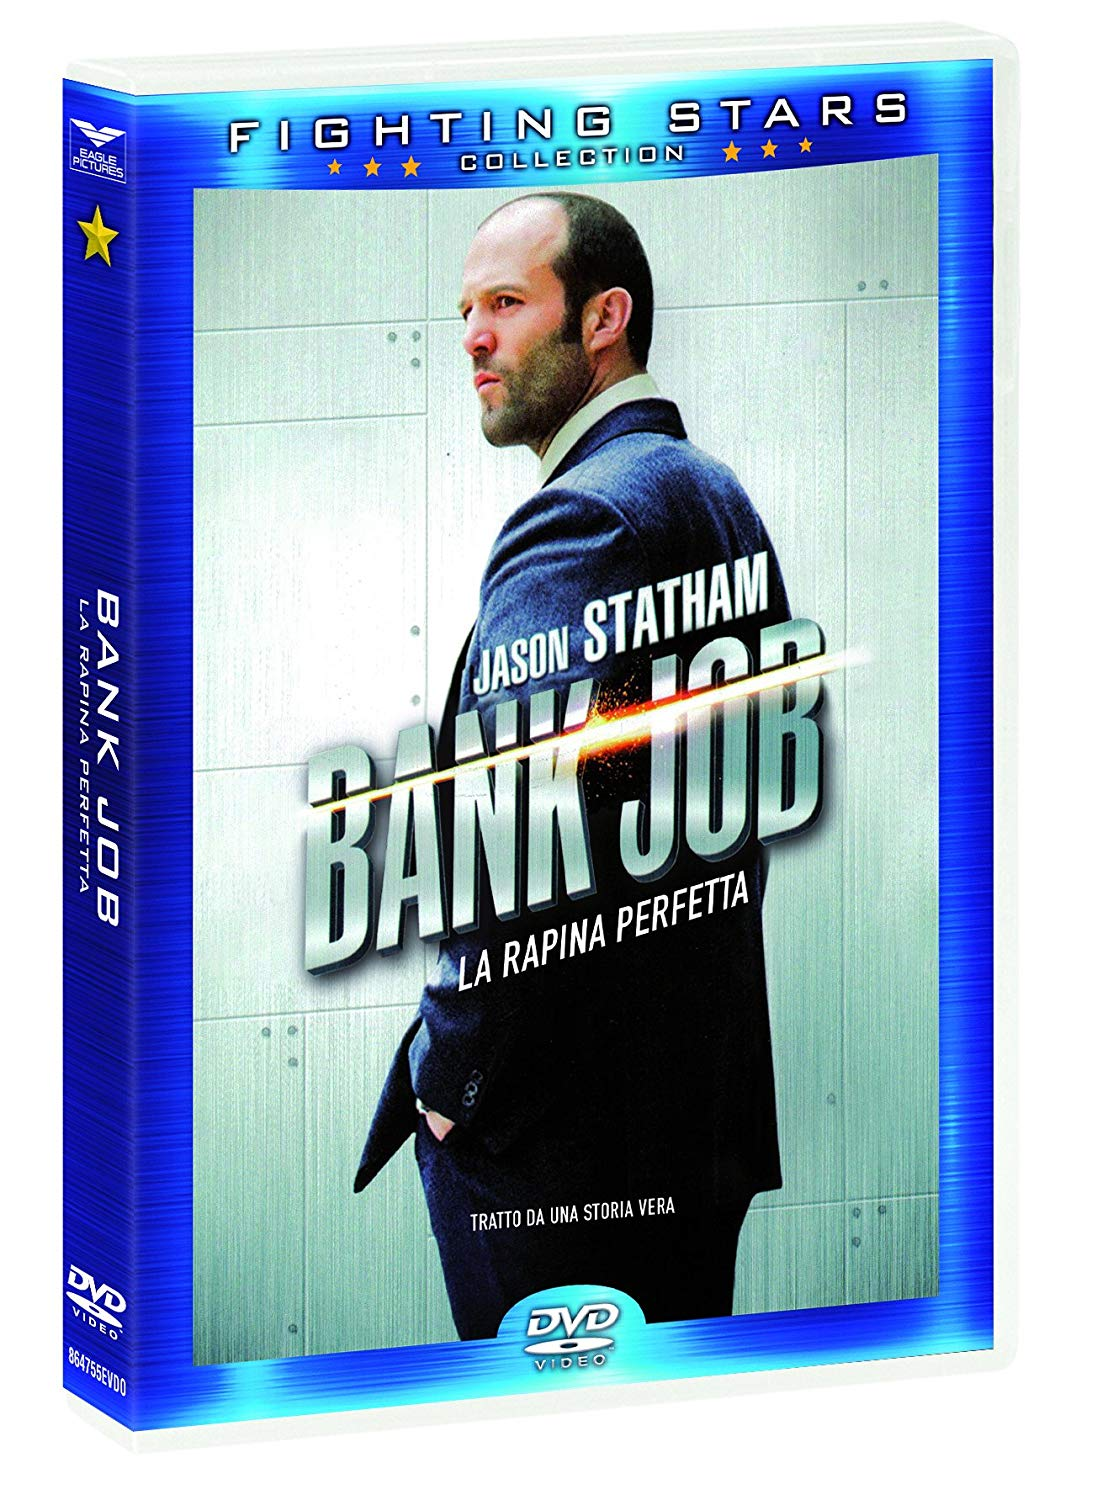 BANK JOB - LA RAPINA PERFETTA (FIGHTING STARS) (DVD)